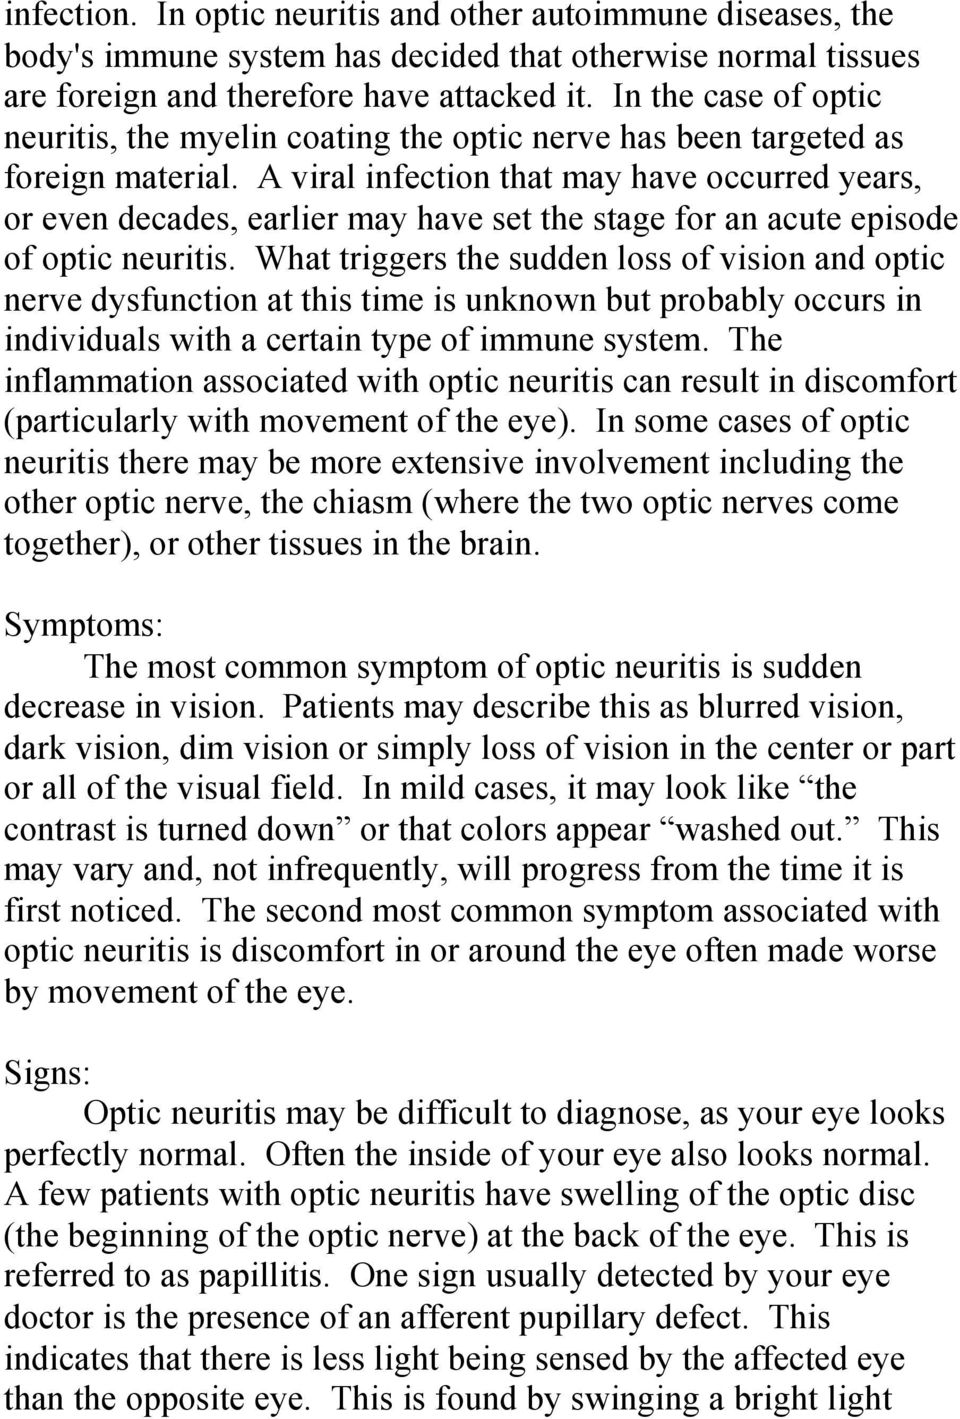 A viral infection that may have occurred years, or even decades, earlier may have set the stage for an acute episode of optic neuritis.